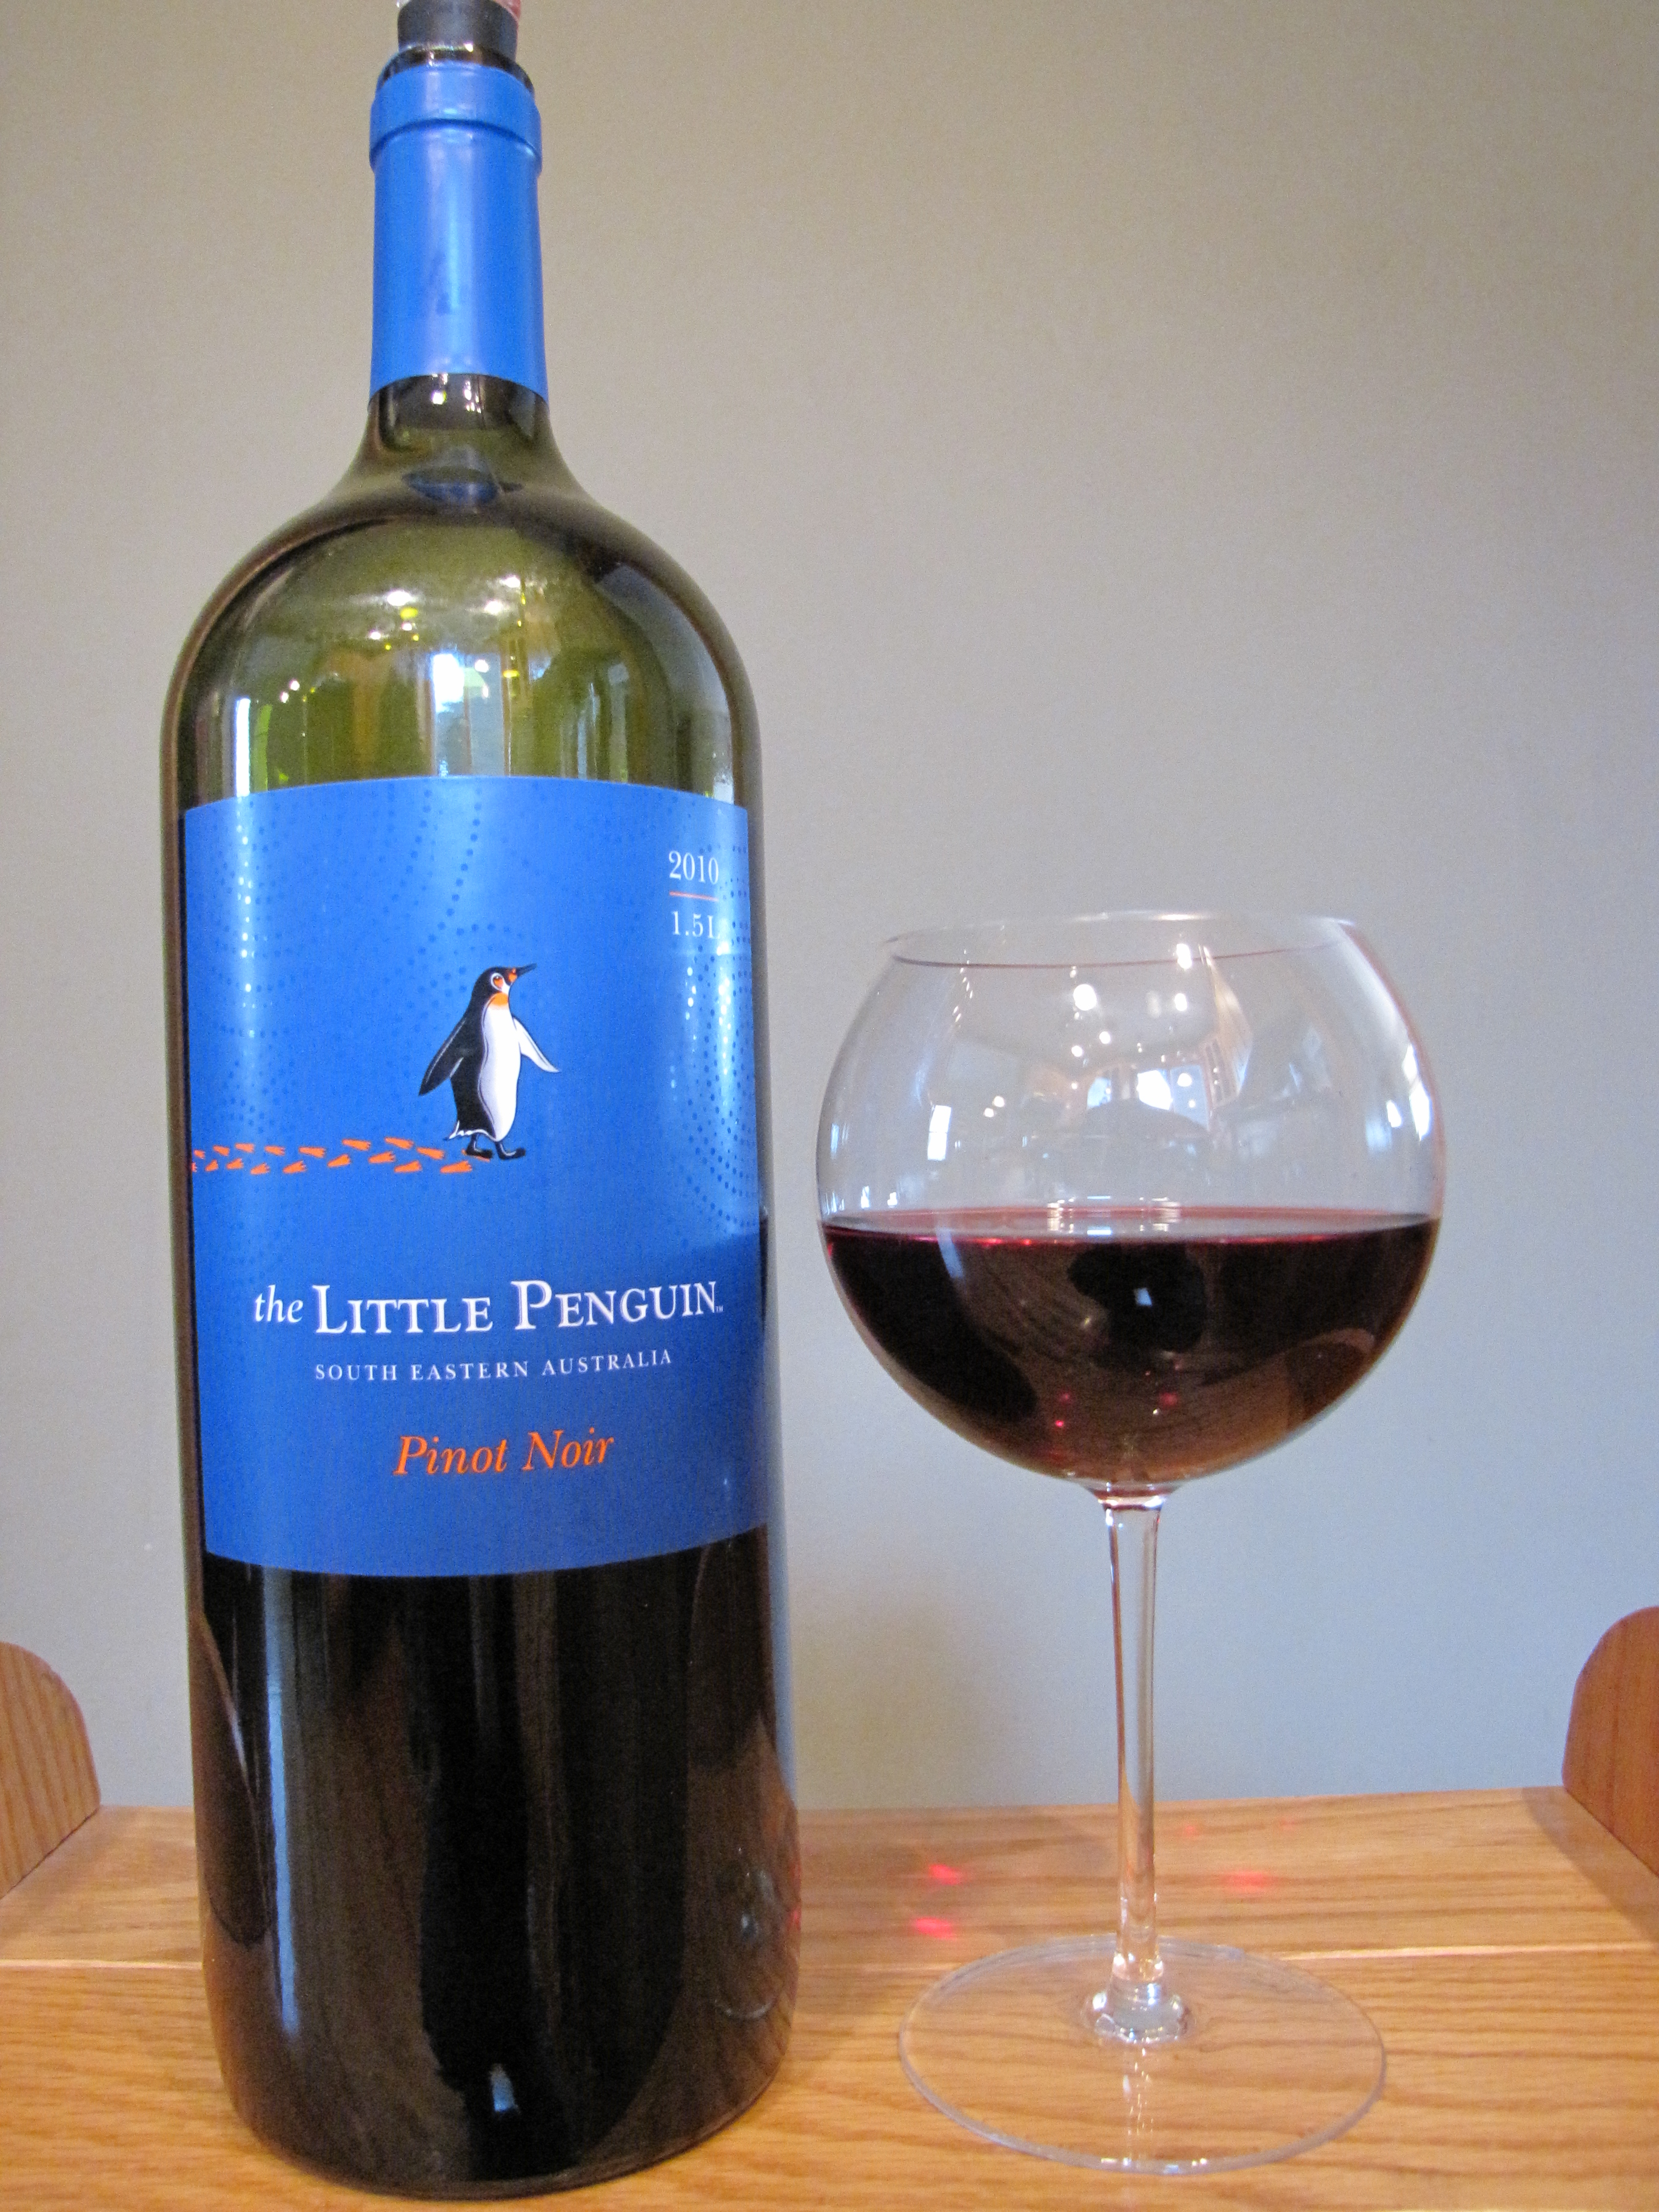 The Little Penguin Pinot Noir (2010)